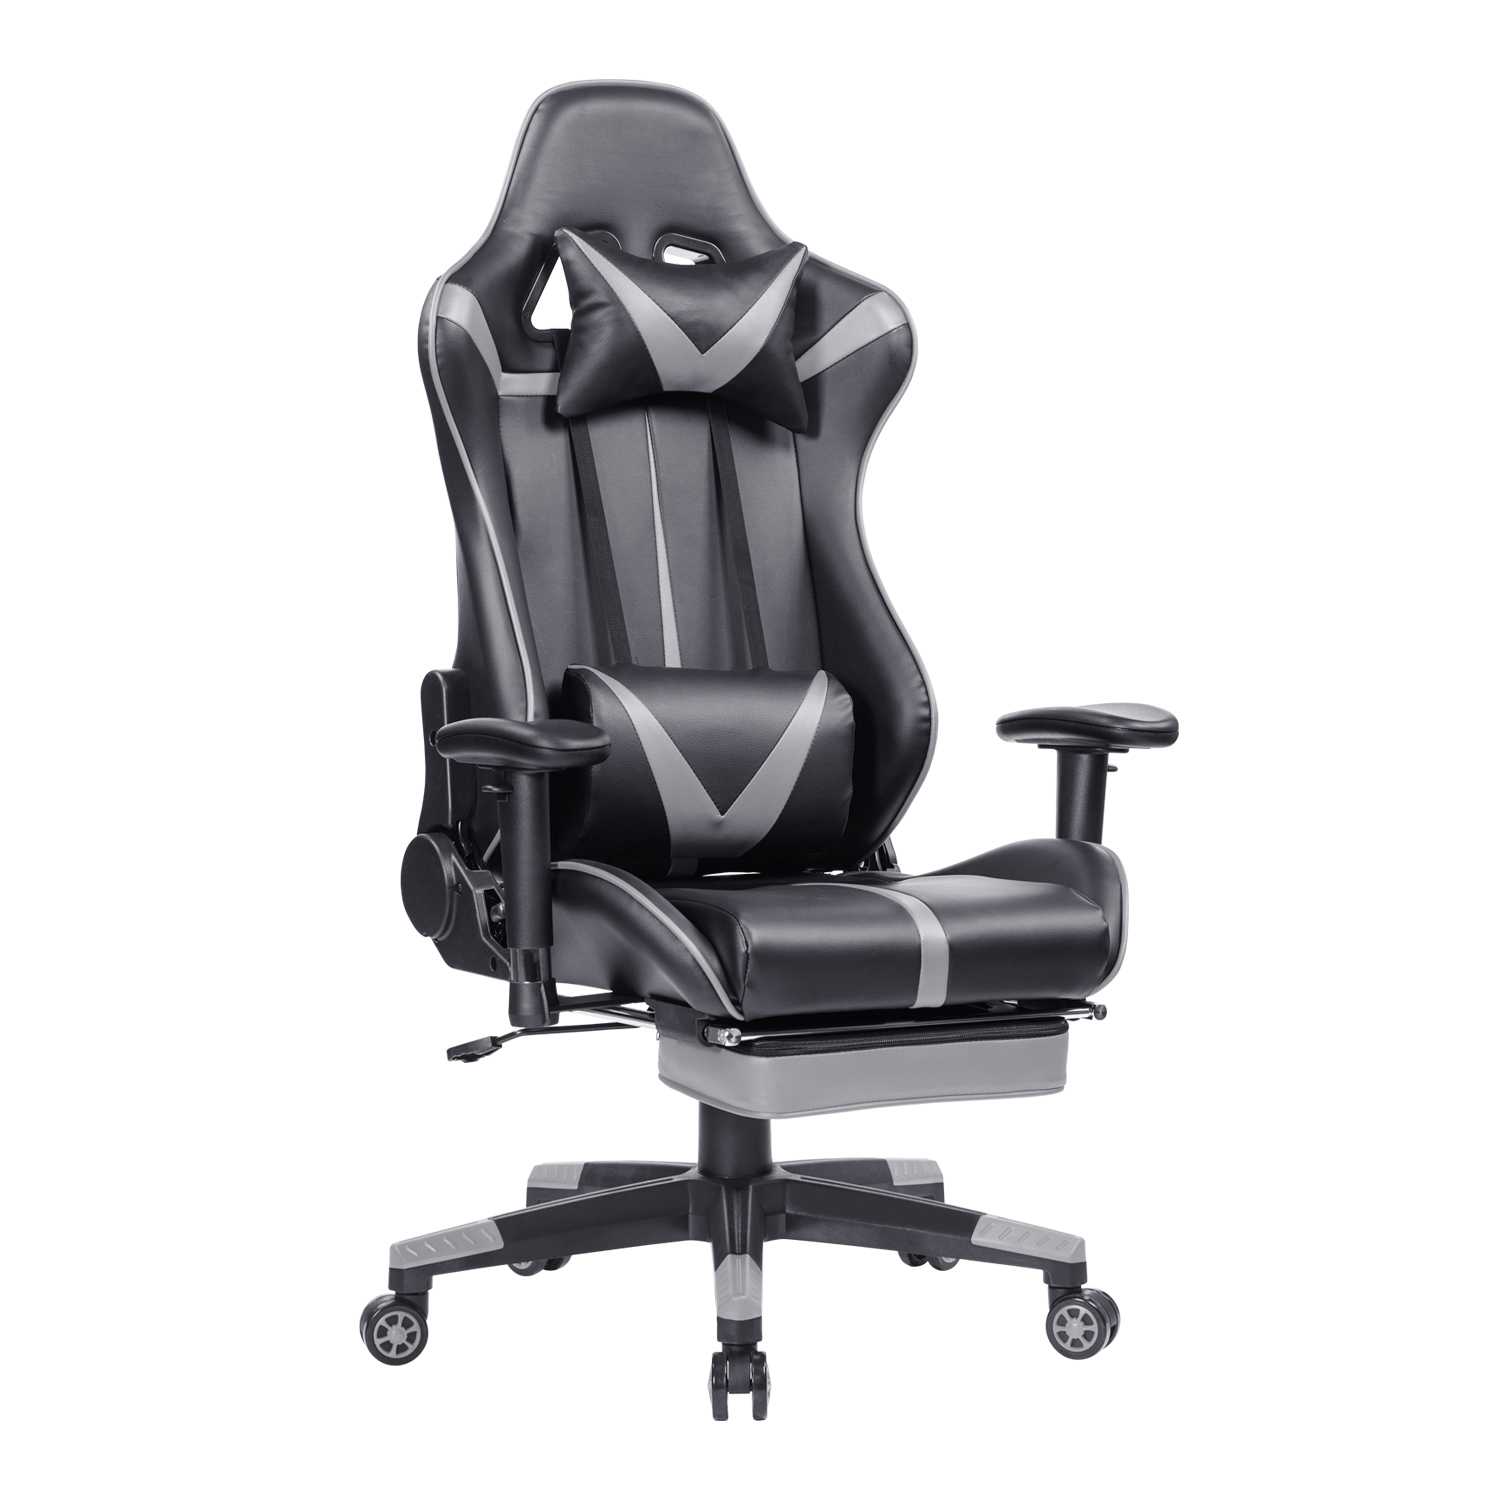 Comfortable Massage EU Racing Chair Reclining Computer Office Chair 360 Degree Revolving Gaming Recliner Armchair With Footrest